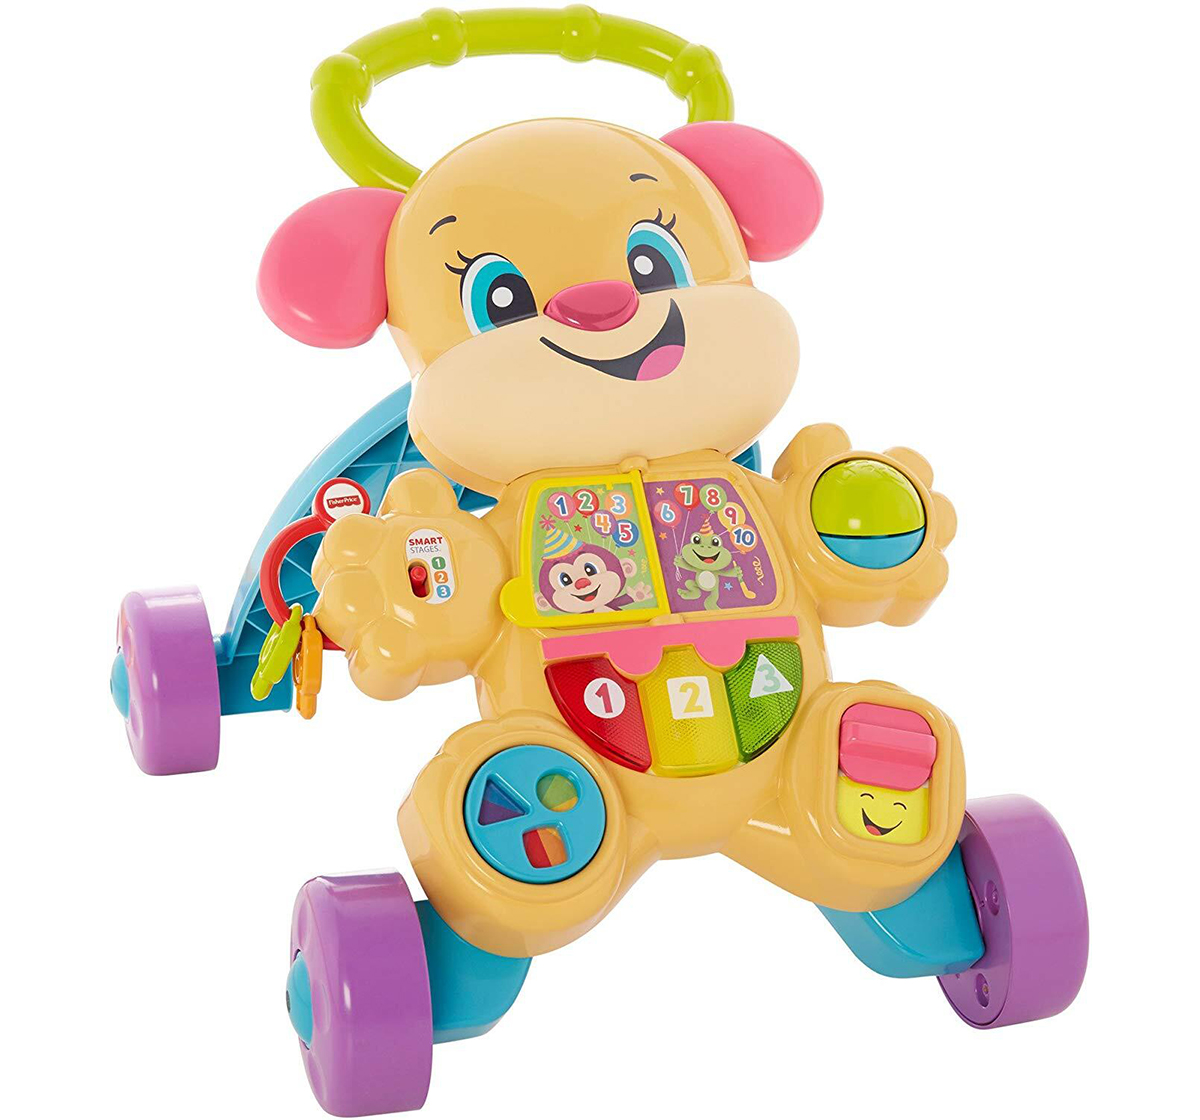 Fisher-Price | Fisher Price Laugh And Learn Smart Stages Learn With Sis Walker, Multi Color Baby Gear for Kids age 6M+